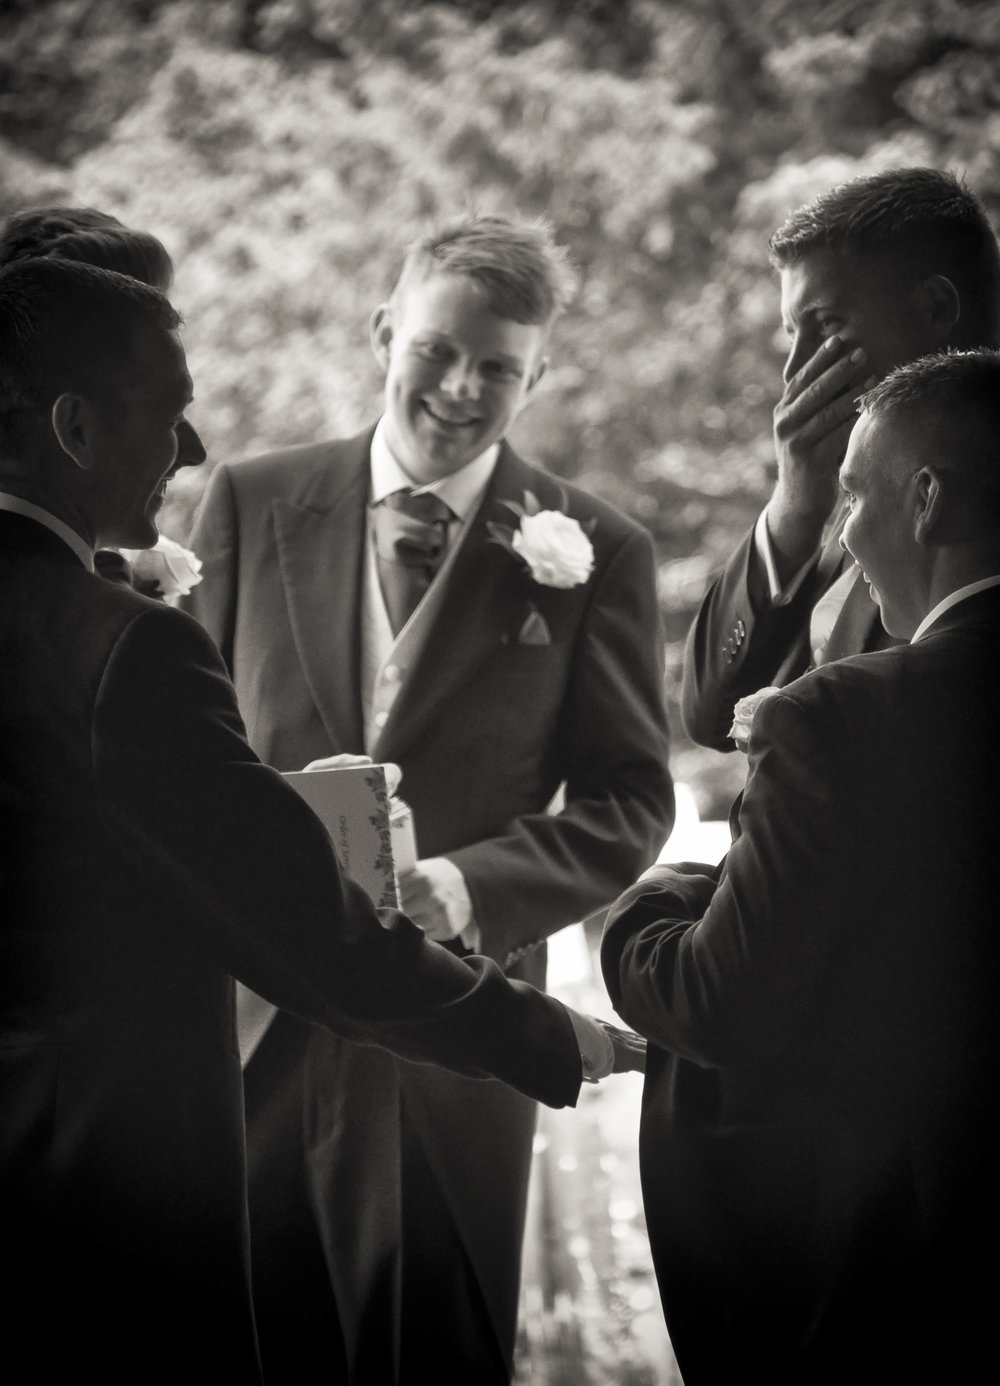 The Groomsmen, 2014   Wisborough Green, England